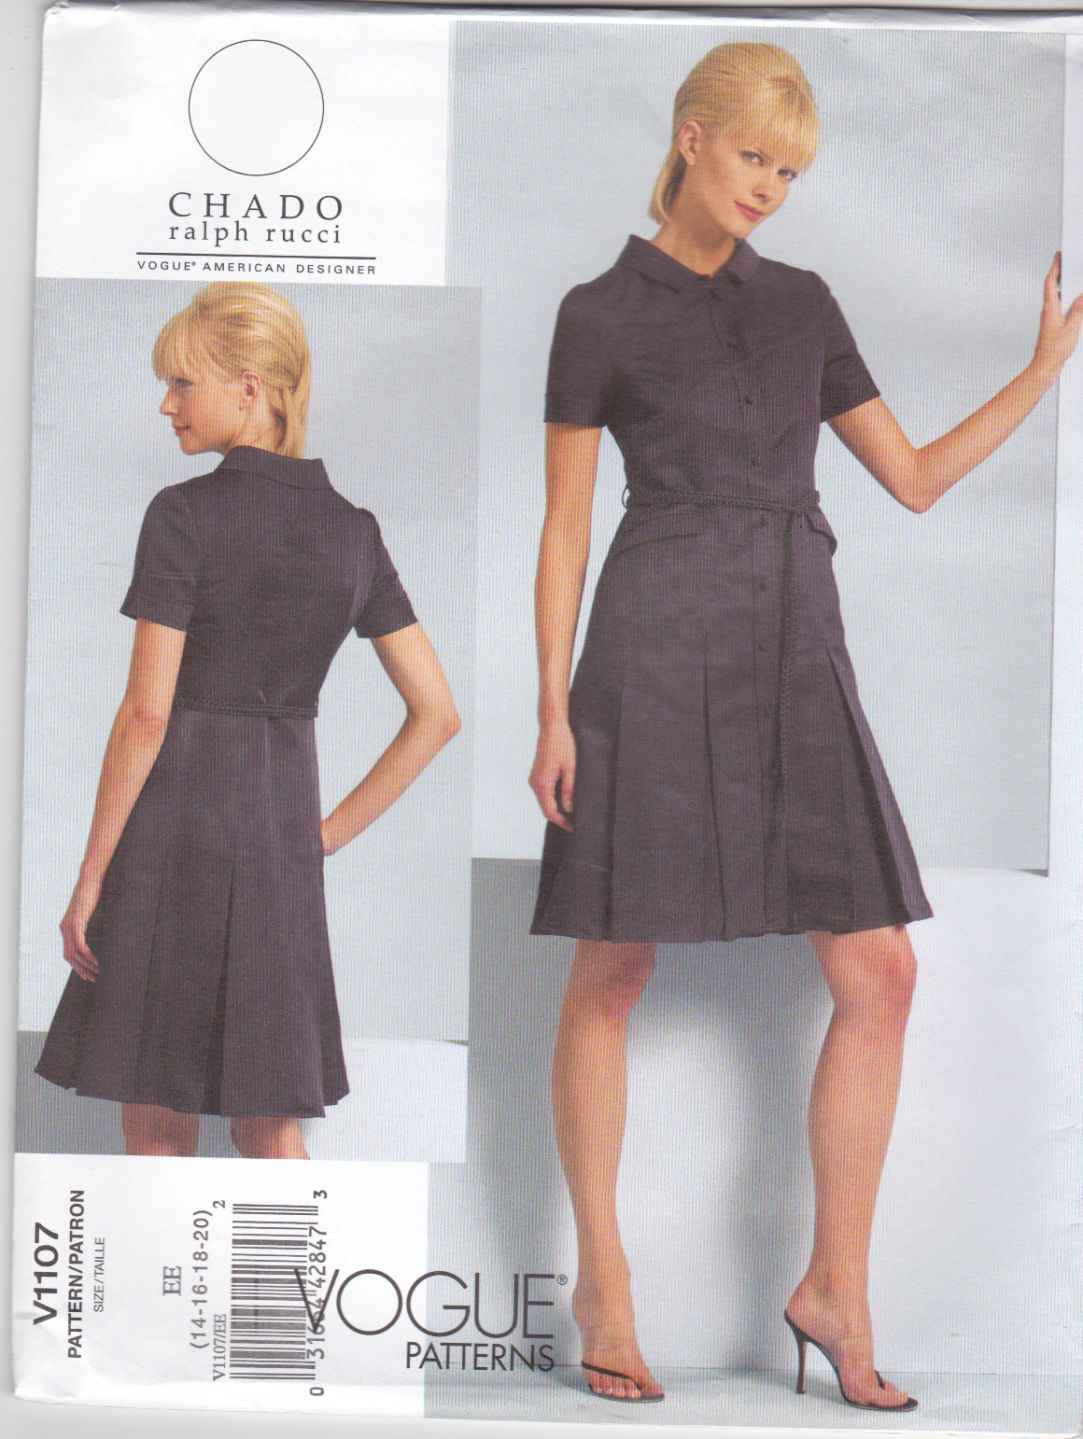 Vogue Sewing Pattern 1107 V1107 Misses Sizes 14-20 CHADO Ralph Rucci Dress Belt Seam Details